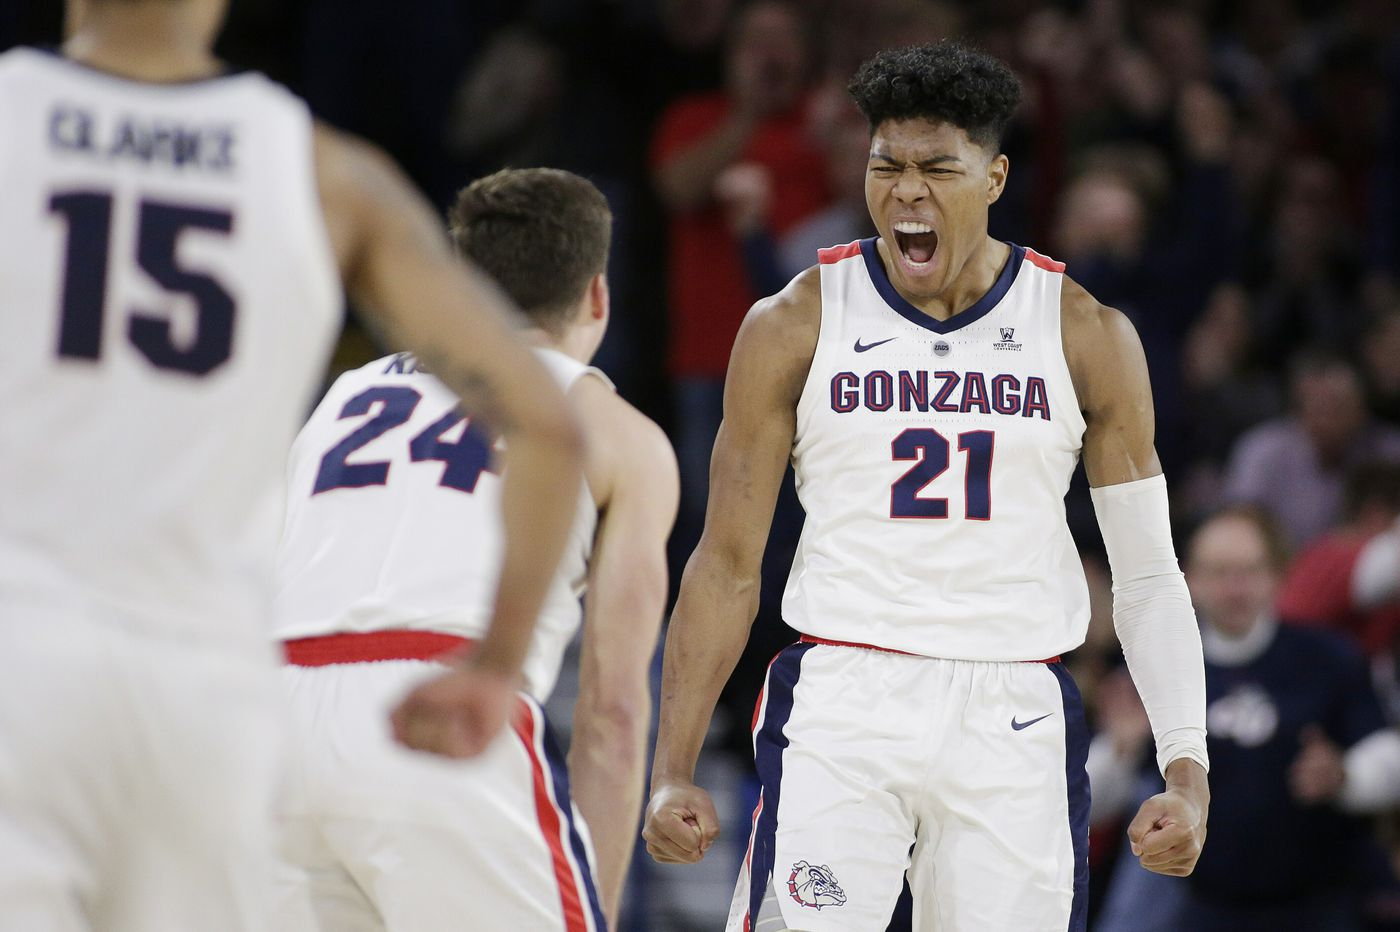 2019 NCAA Tournament West region breakdown: Gonzaga is team to beat